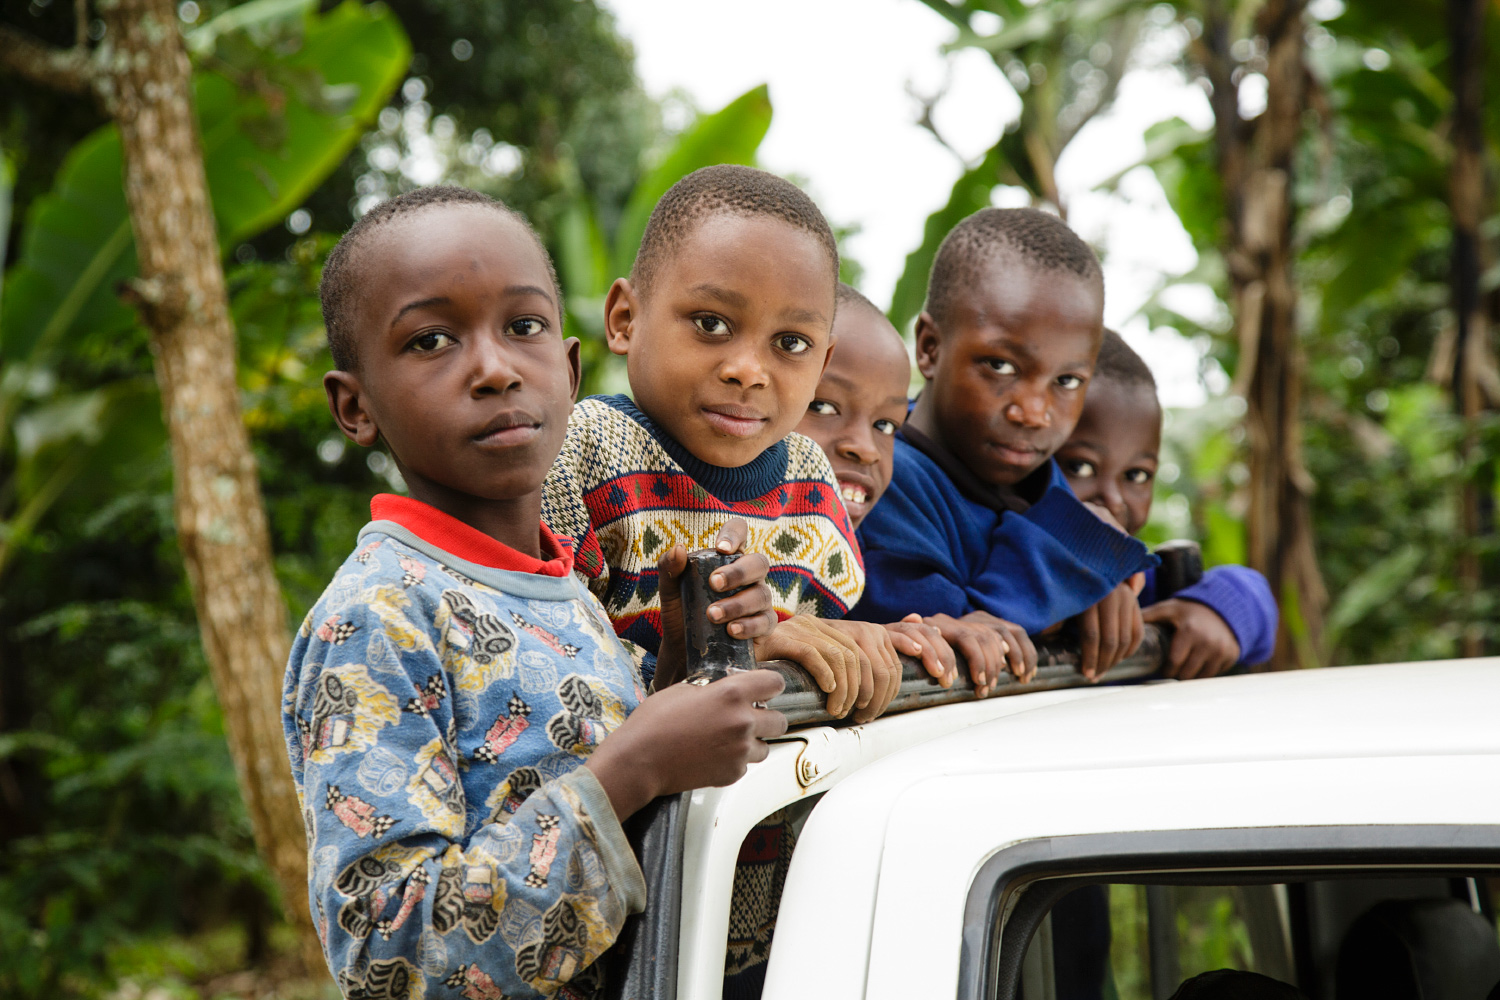 Village children riding on the back of a car in Kibosho-Umbwe.